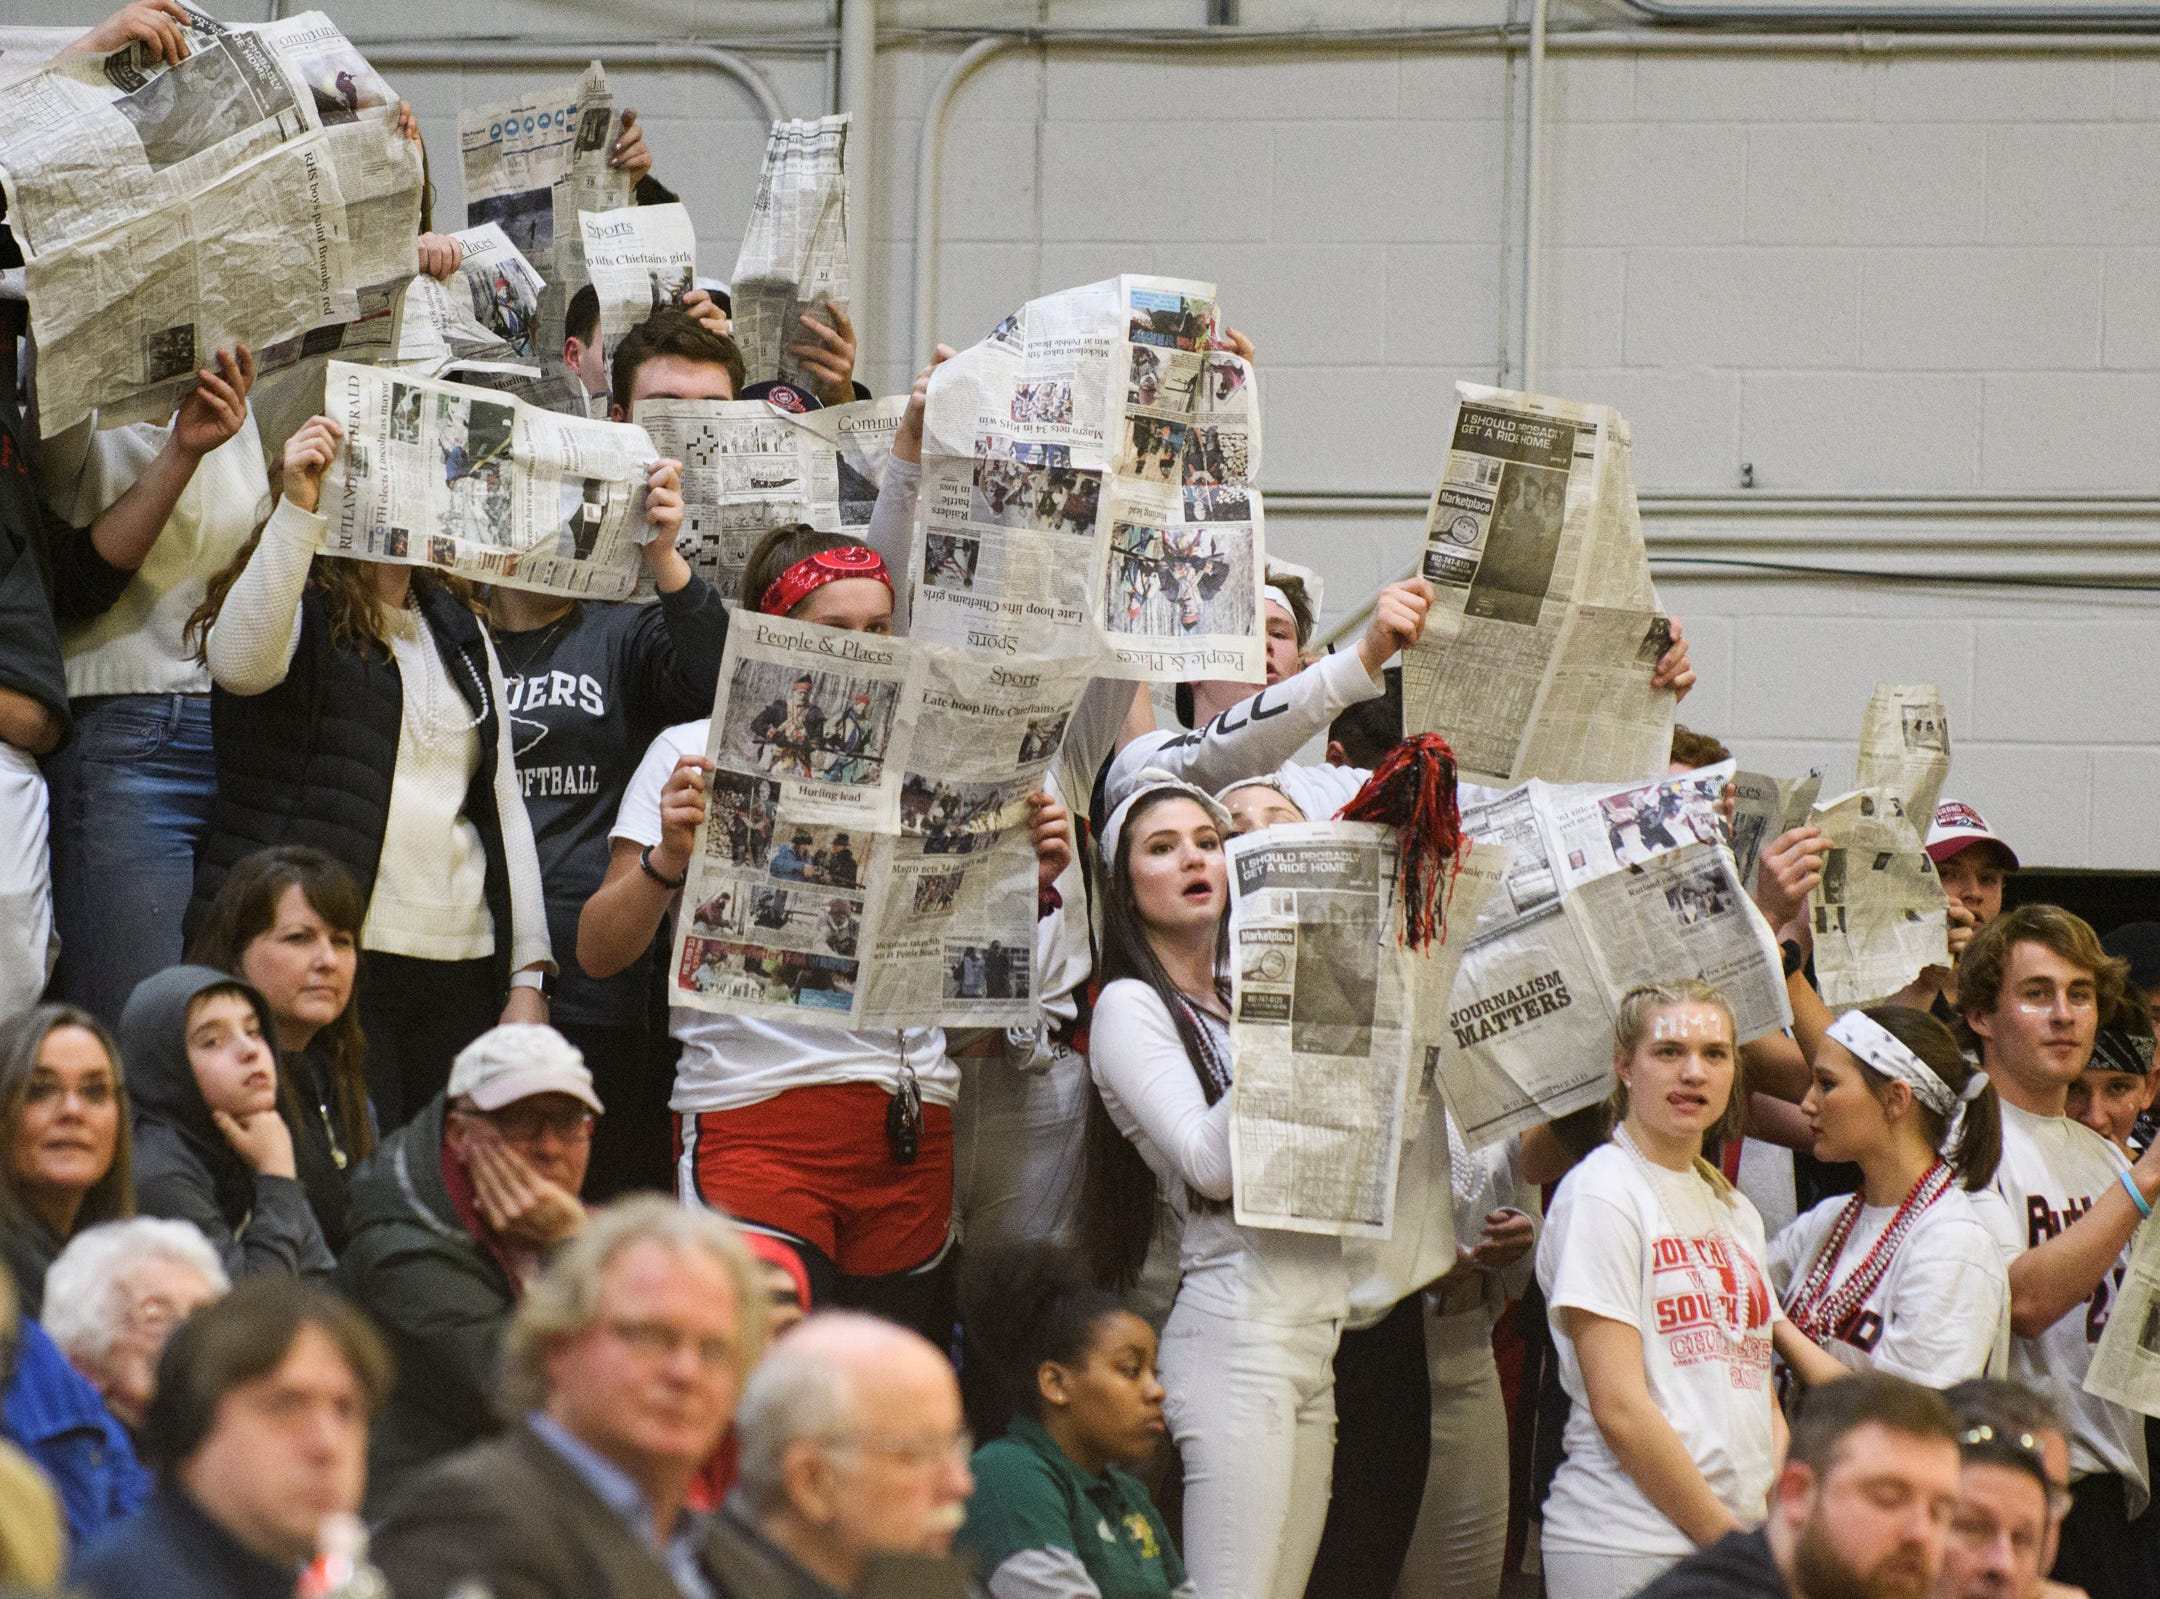 Rutland fans hold p newspapers during a MMU free throw attempt during the boys DI semi final basketball game between the Rutland Raiders and the Mount Mansfield Cougars at Patrick Gym on Monday night March 11, 2019 in Burlington, Vermont.